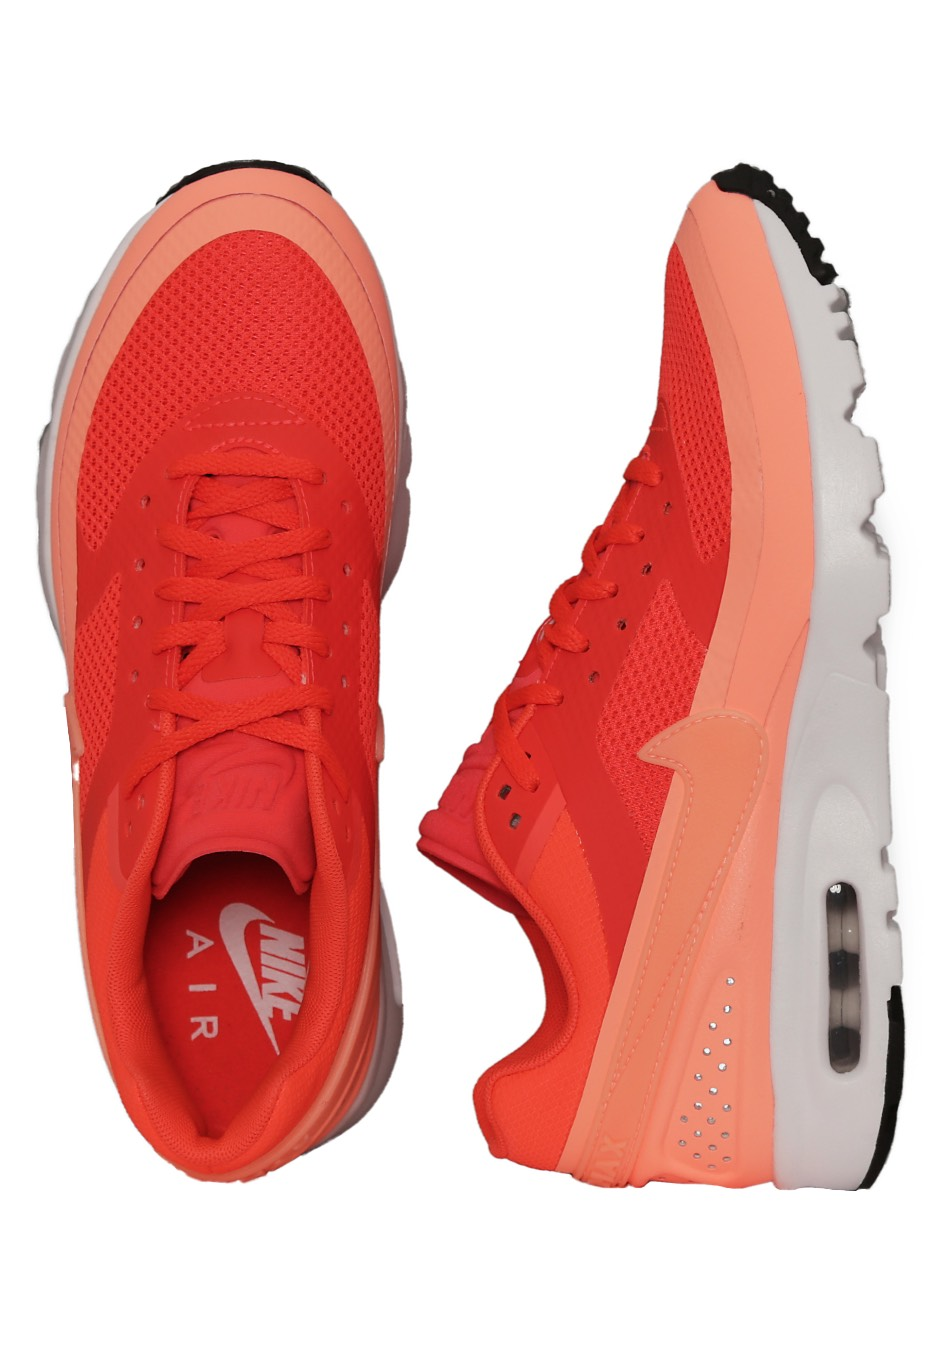 15f18aa7b48e Nike - Air Max BW Ultra Bright Crimson Atomic Pink White Black - Girl Shoes  - Impericon.com Worldwide